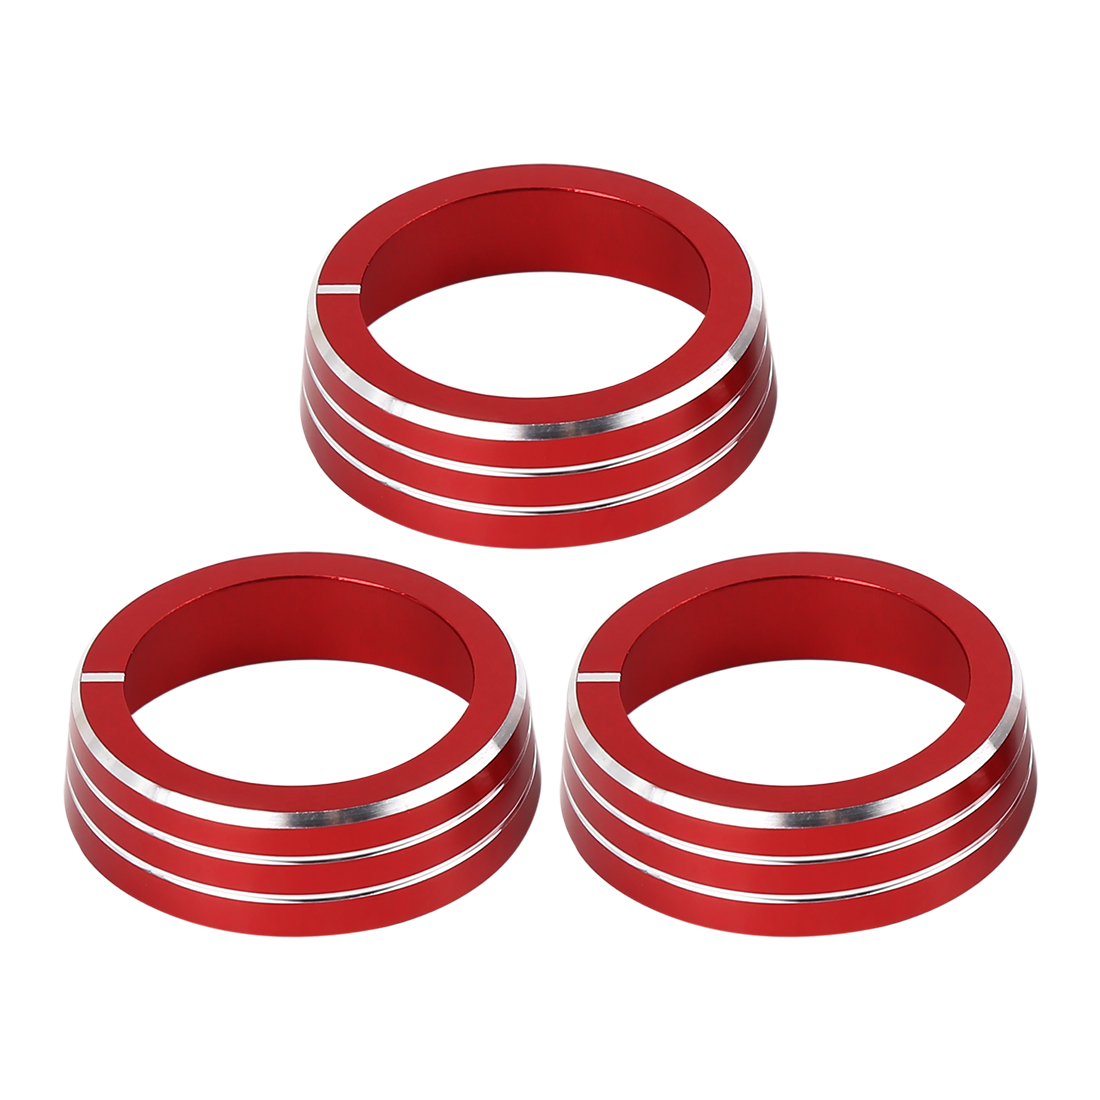 3 Pcs Red AC Climate Control Ring Knob Covers Trim for VW MK6 Golf GTI Jetta